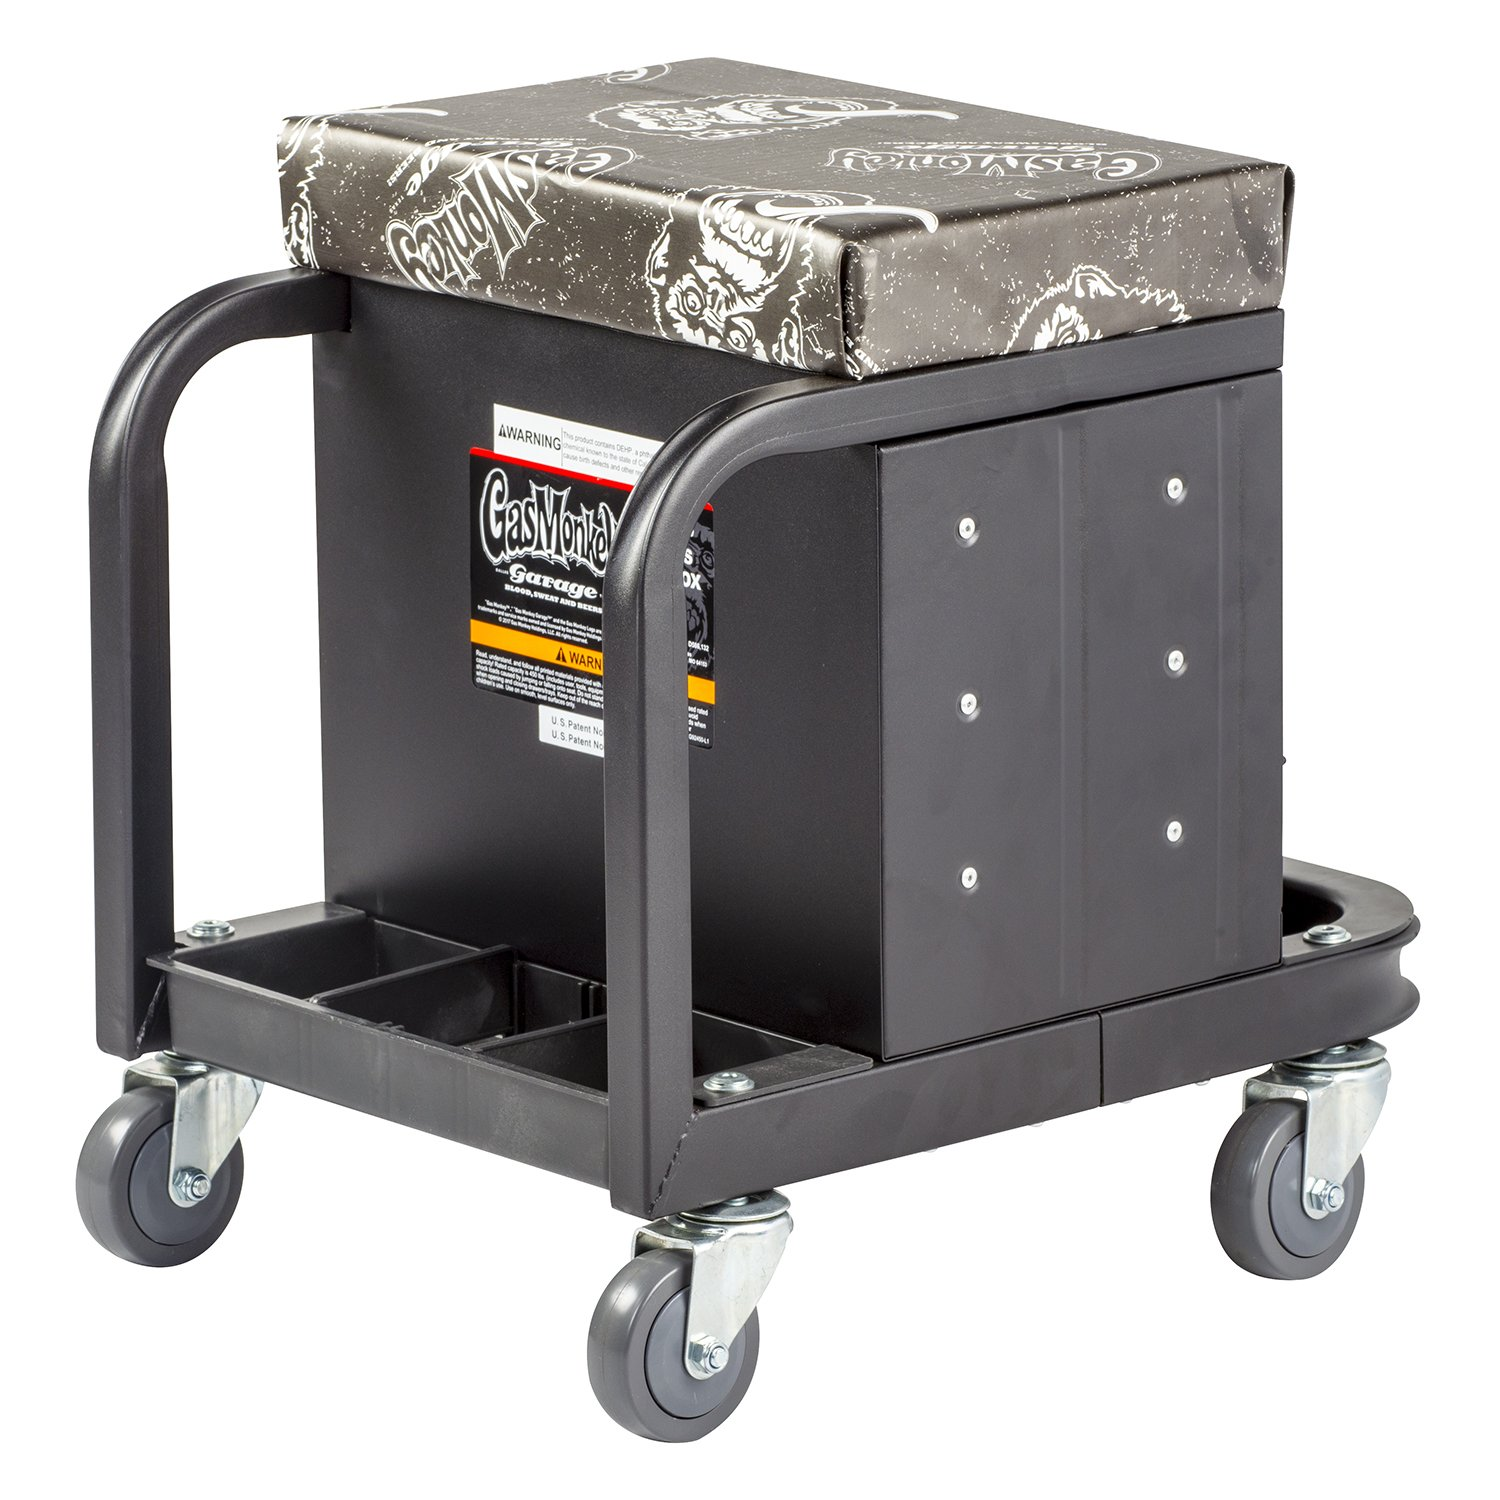 Gas Monkey Creeper Seat and Tool Box Combo - 3-Drawers Toolbox with 4 Rolling Casters - 450 Lbs Capacity by Gas Monkey (Image #4)